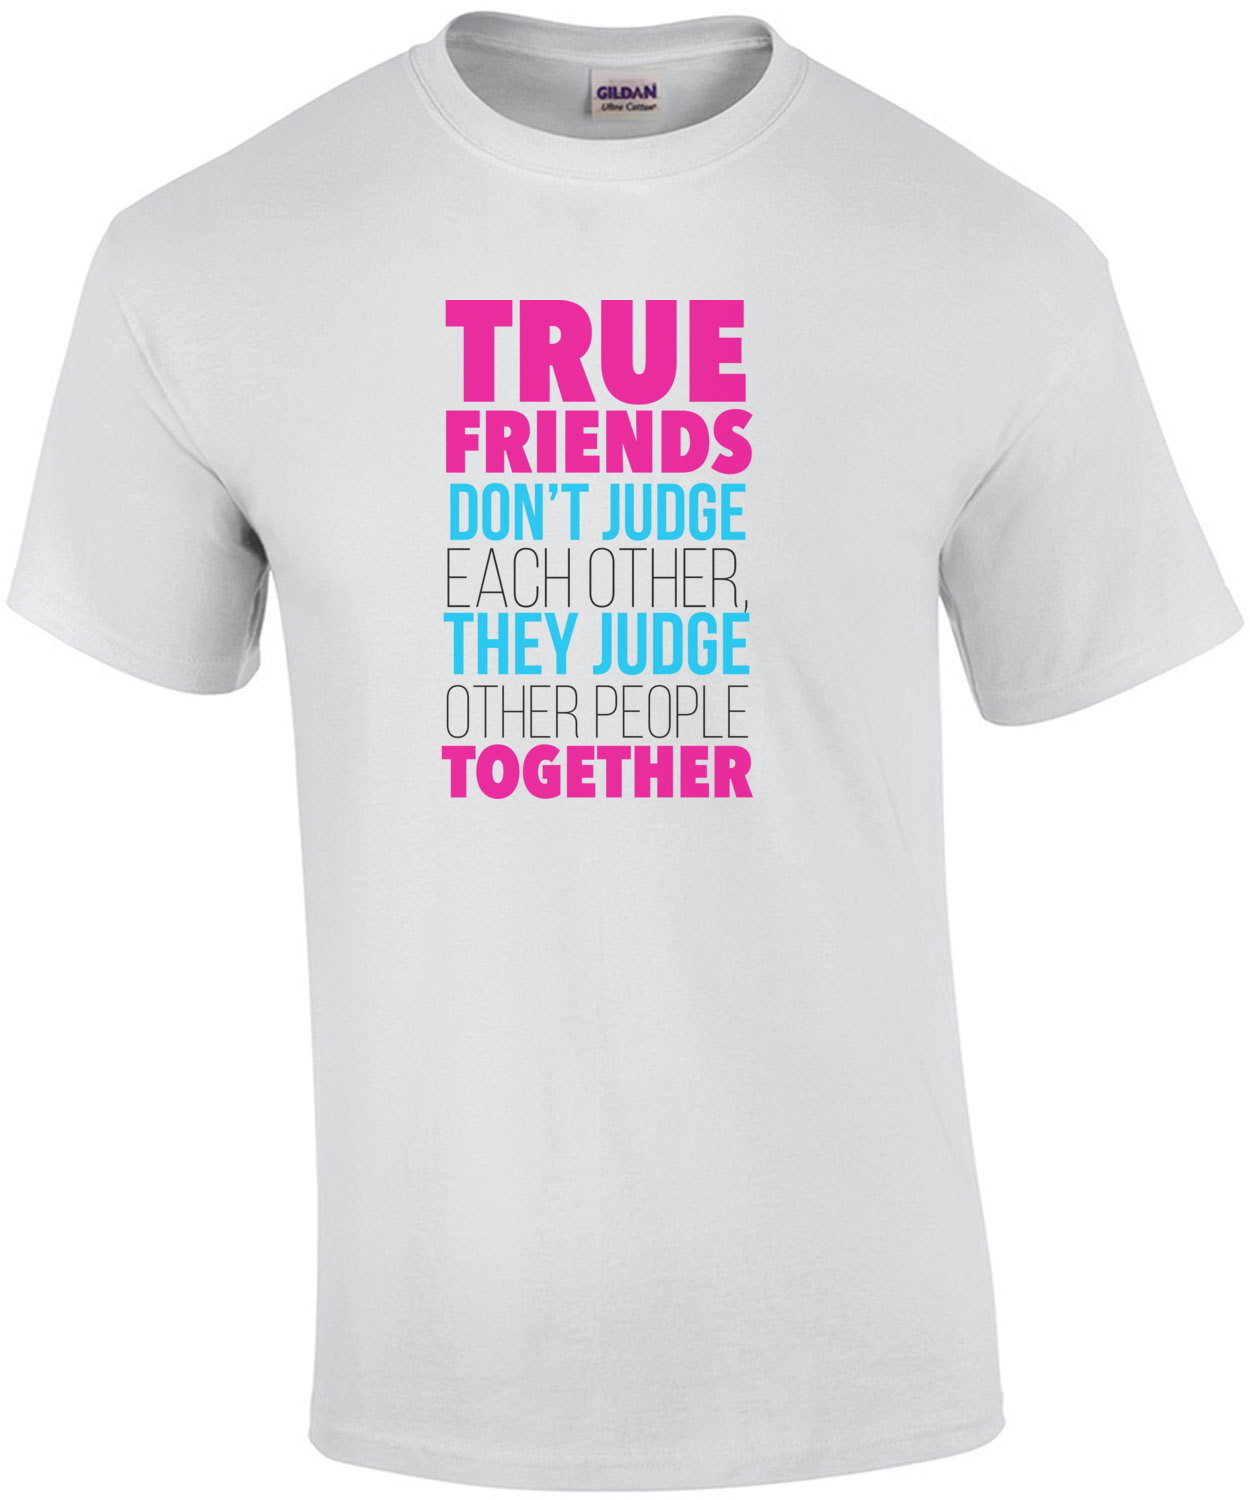 True Friends Don't Judge Each Other They Judge Other People Together - Funny T-Shirt